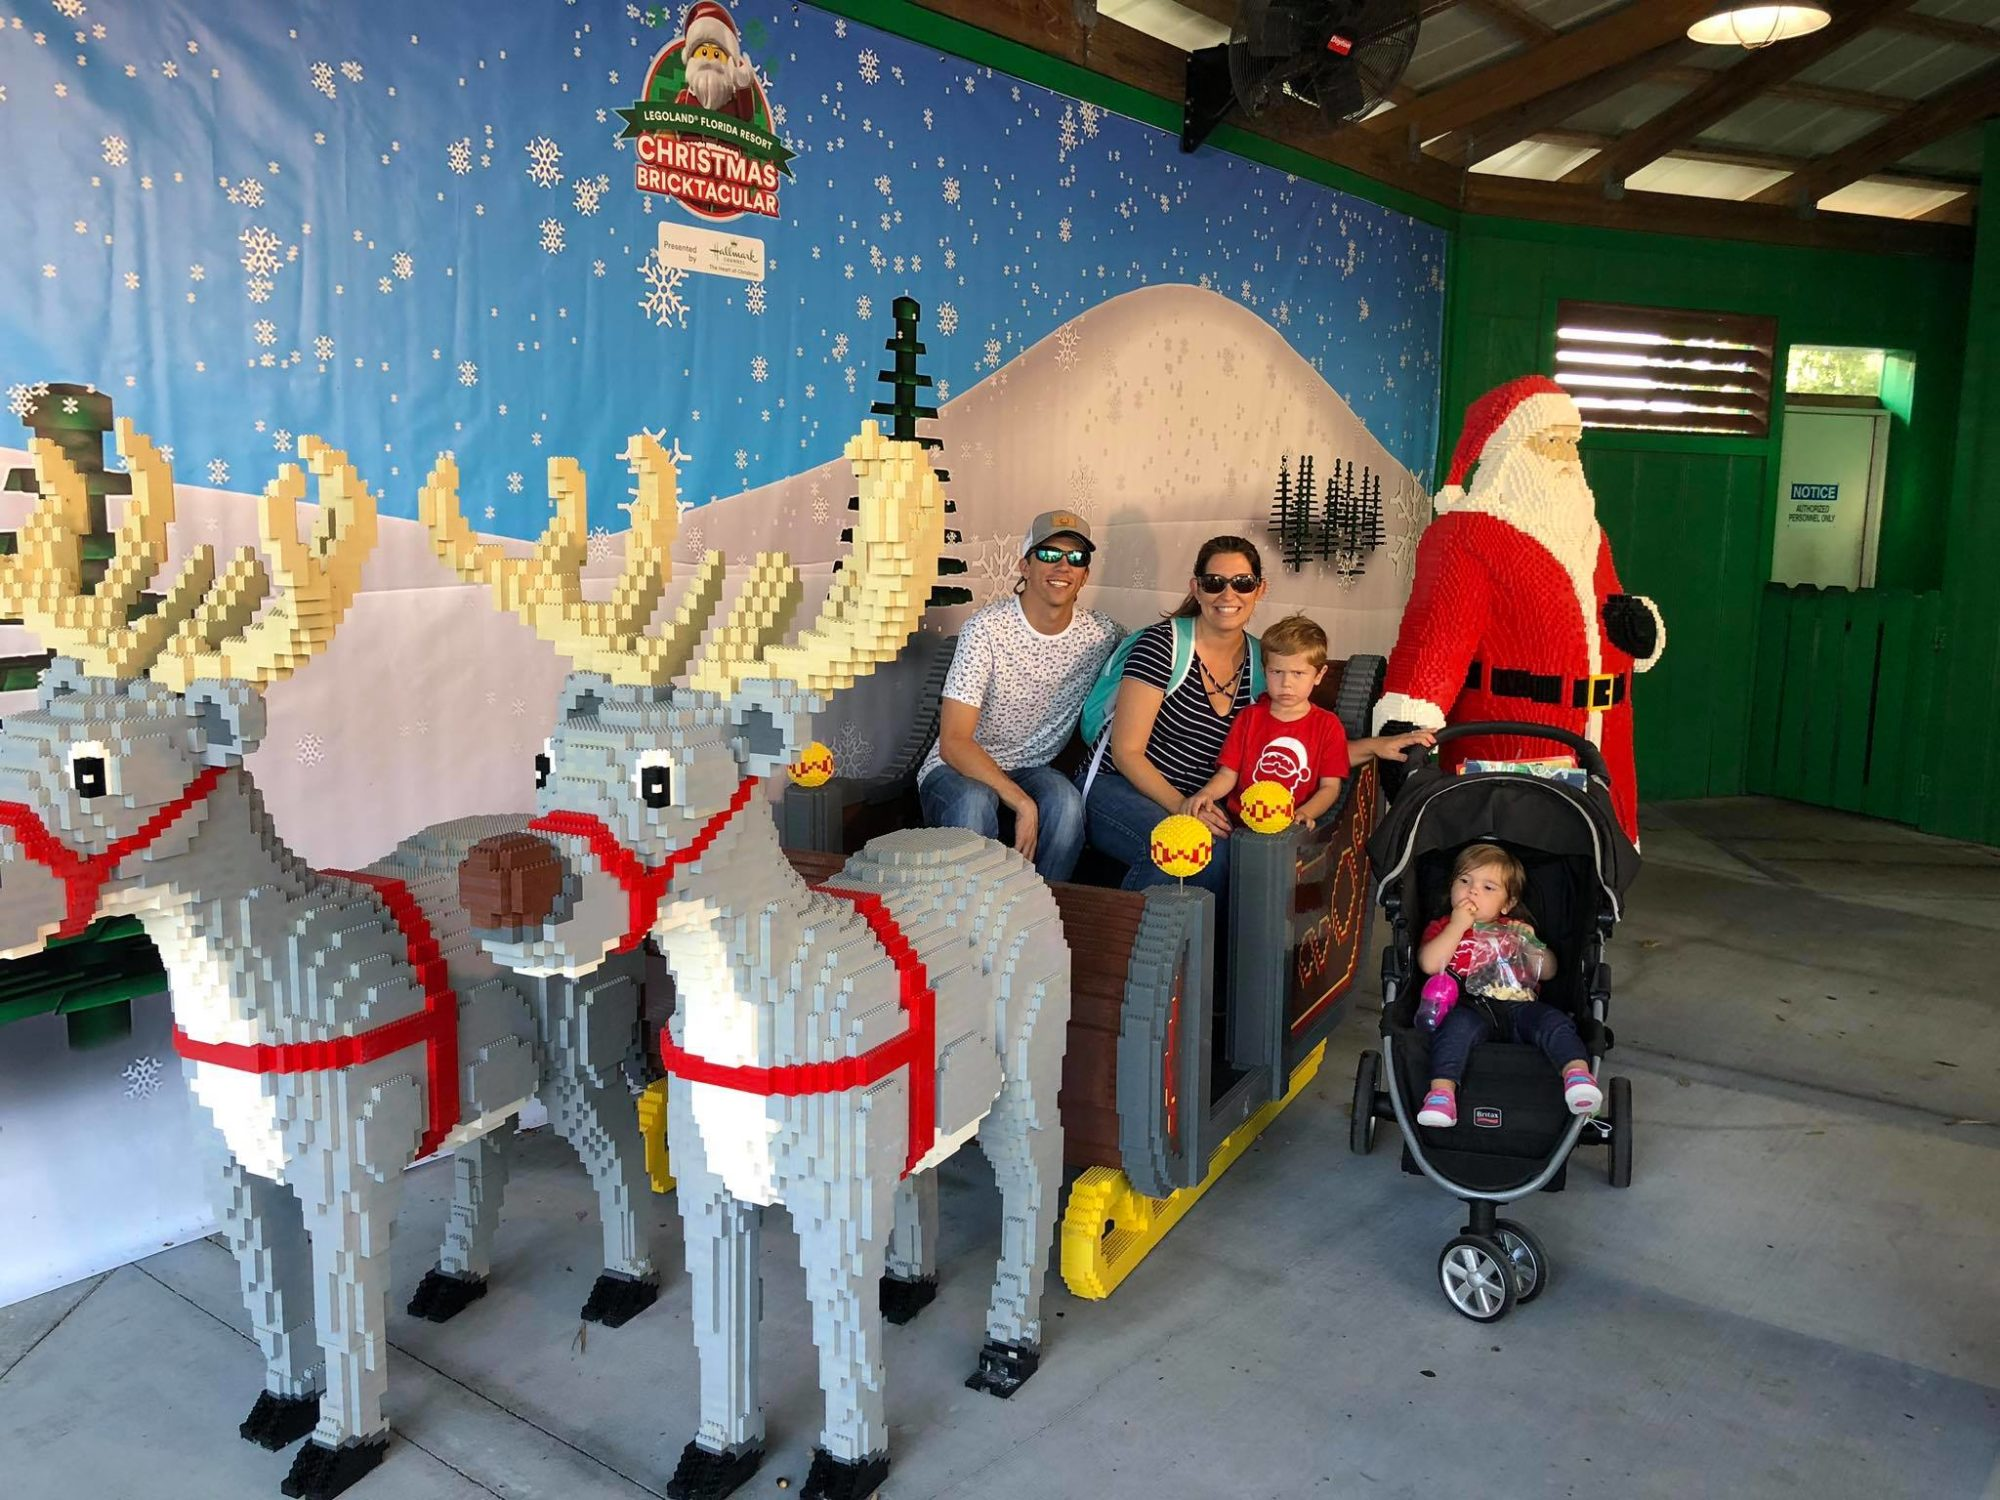 LEGOLAND CHRISTMAS BRICKTACULAR SANTA AND SLEIGH